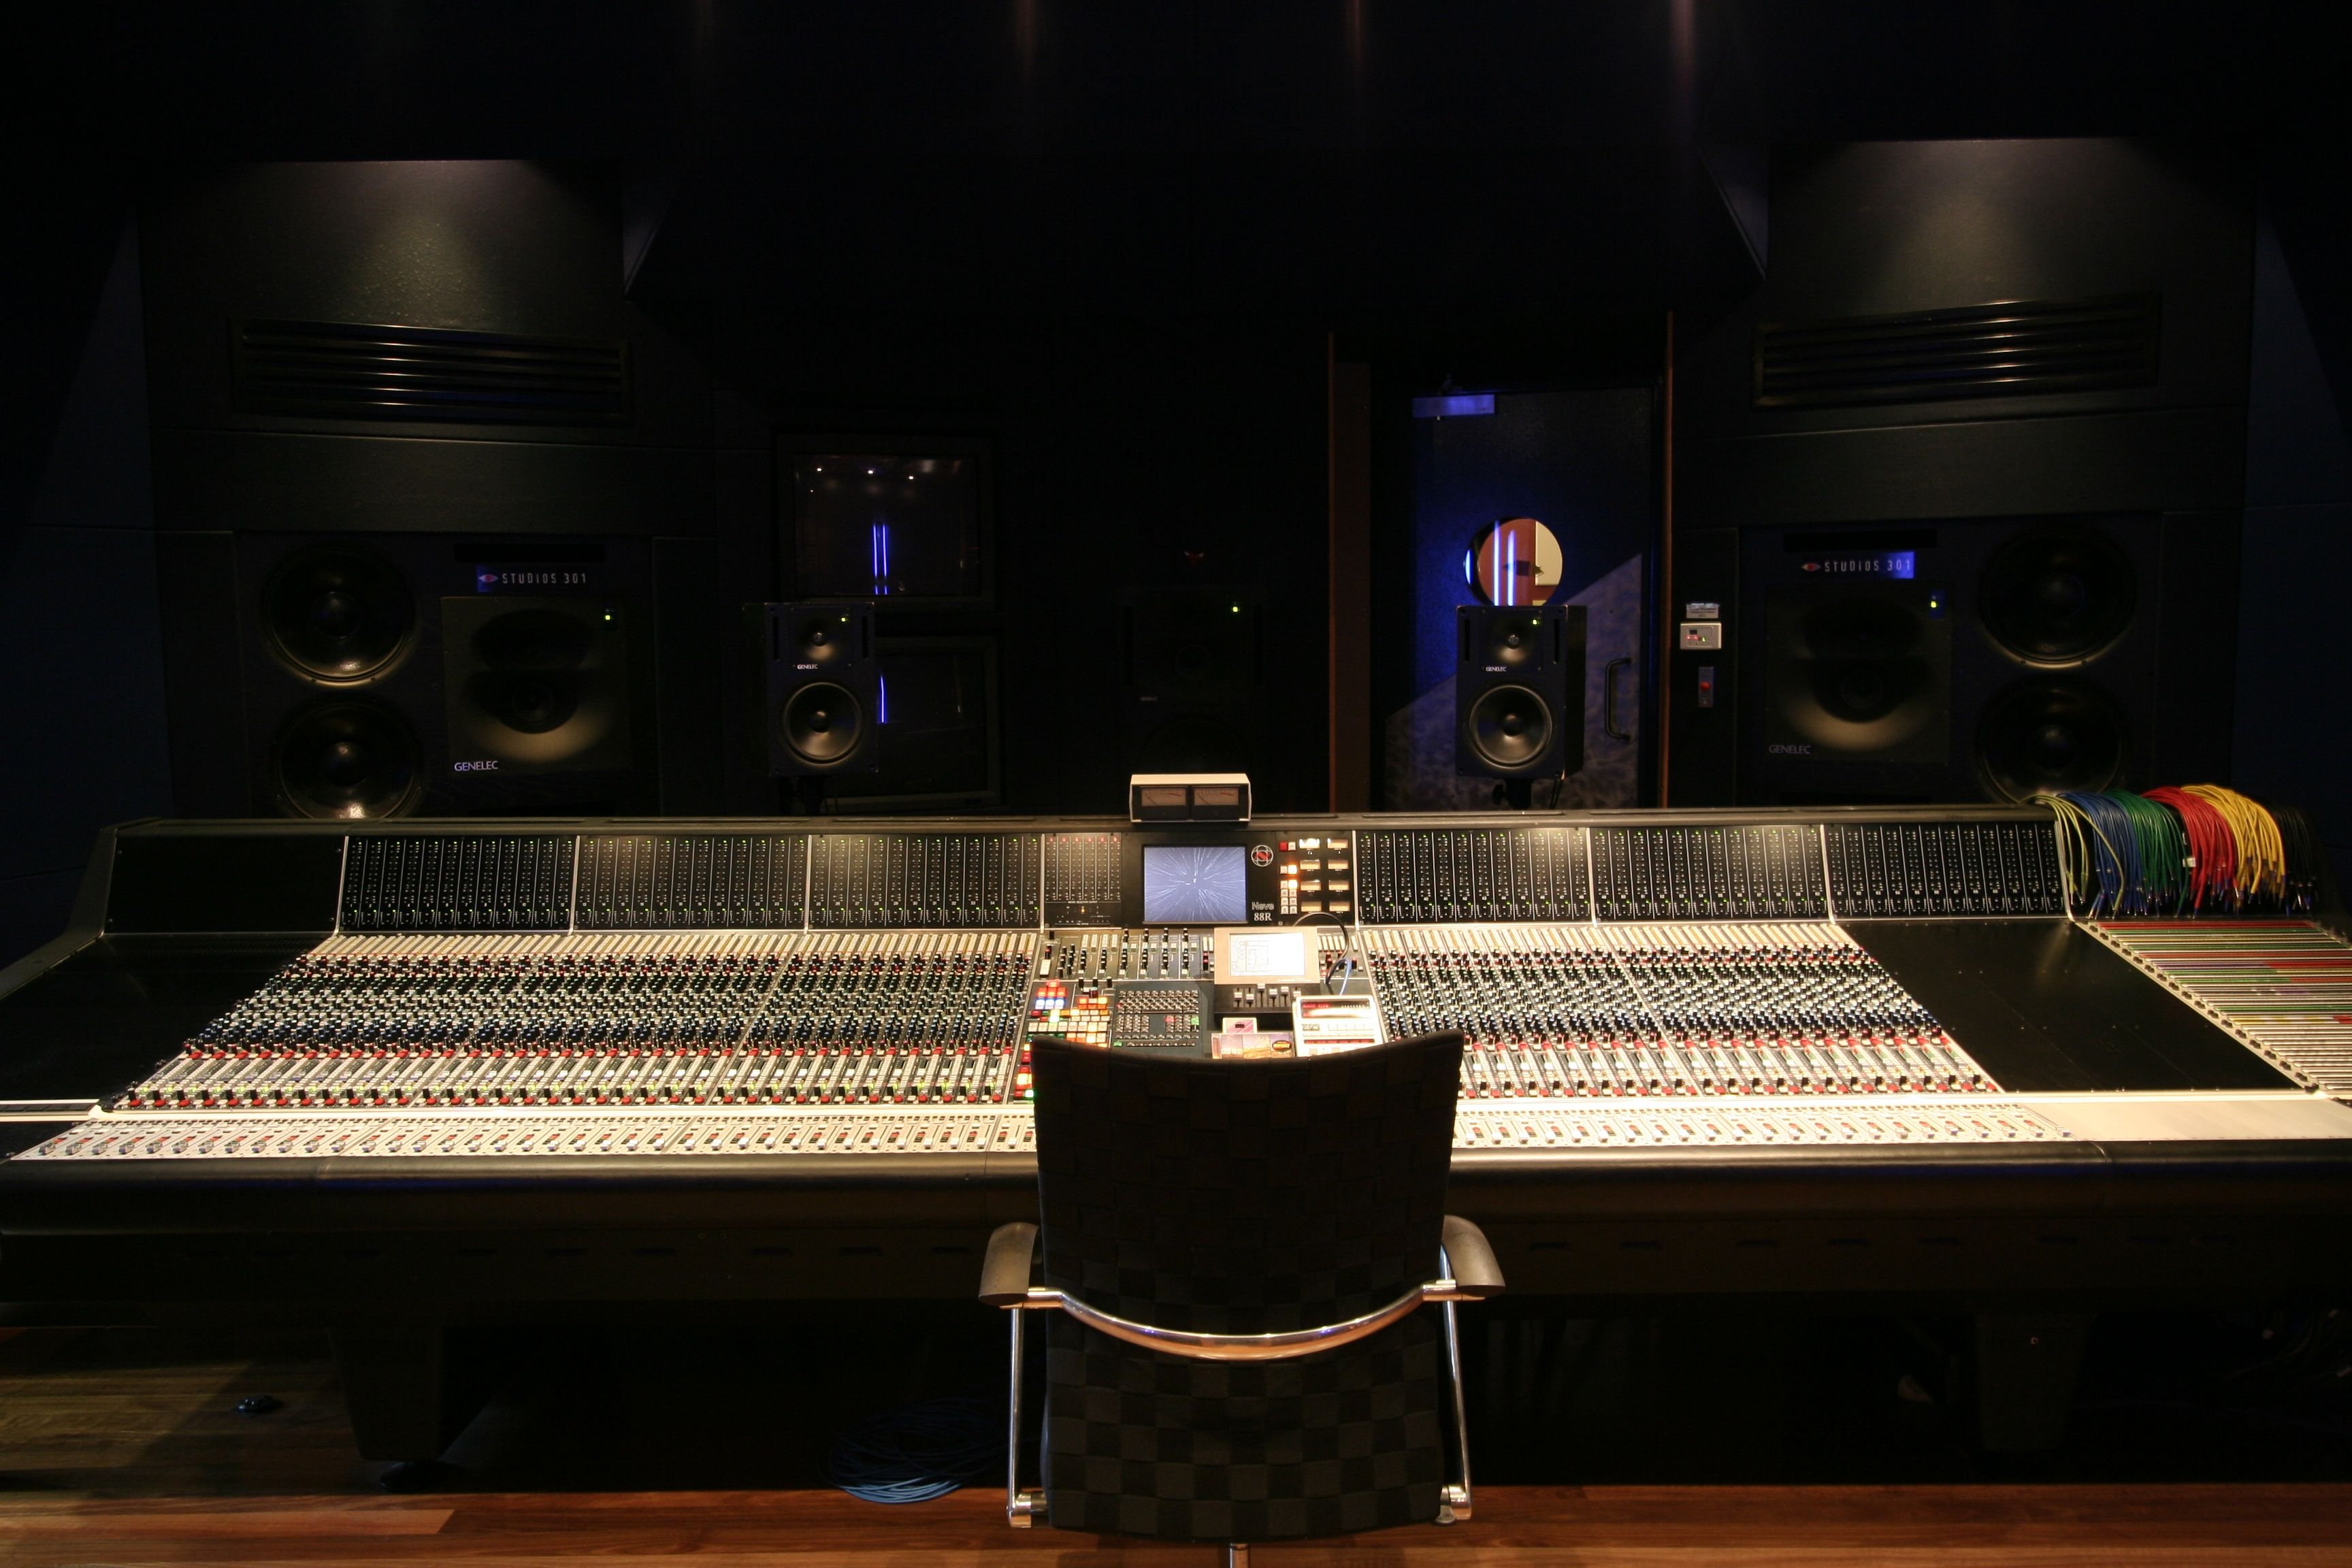 Wondrous Luxury Recording Studio With The Neve 88R Console Recording Largest Home Design Picture Inspirations Pitcheantrous